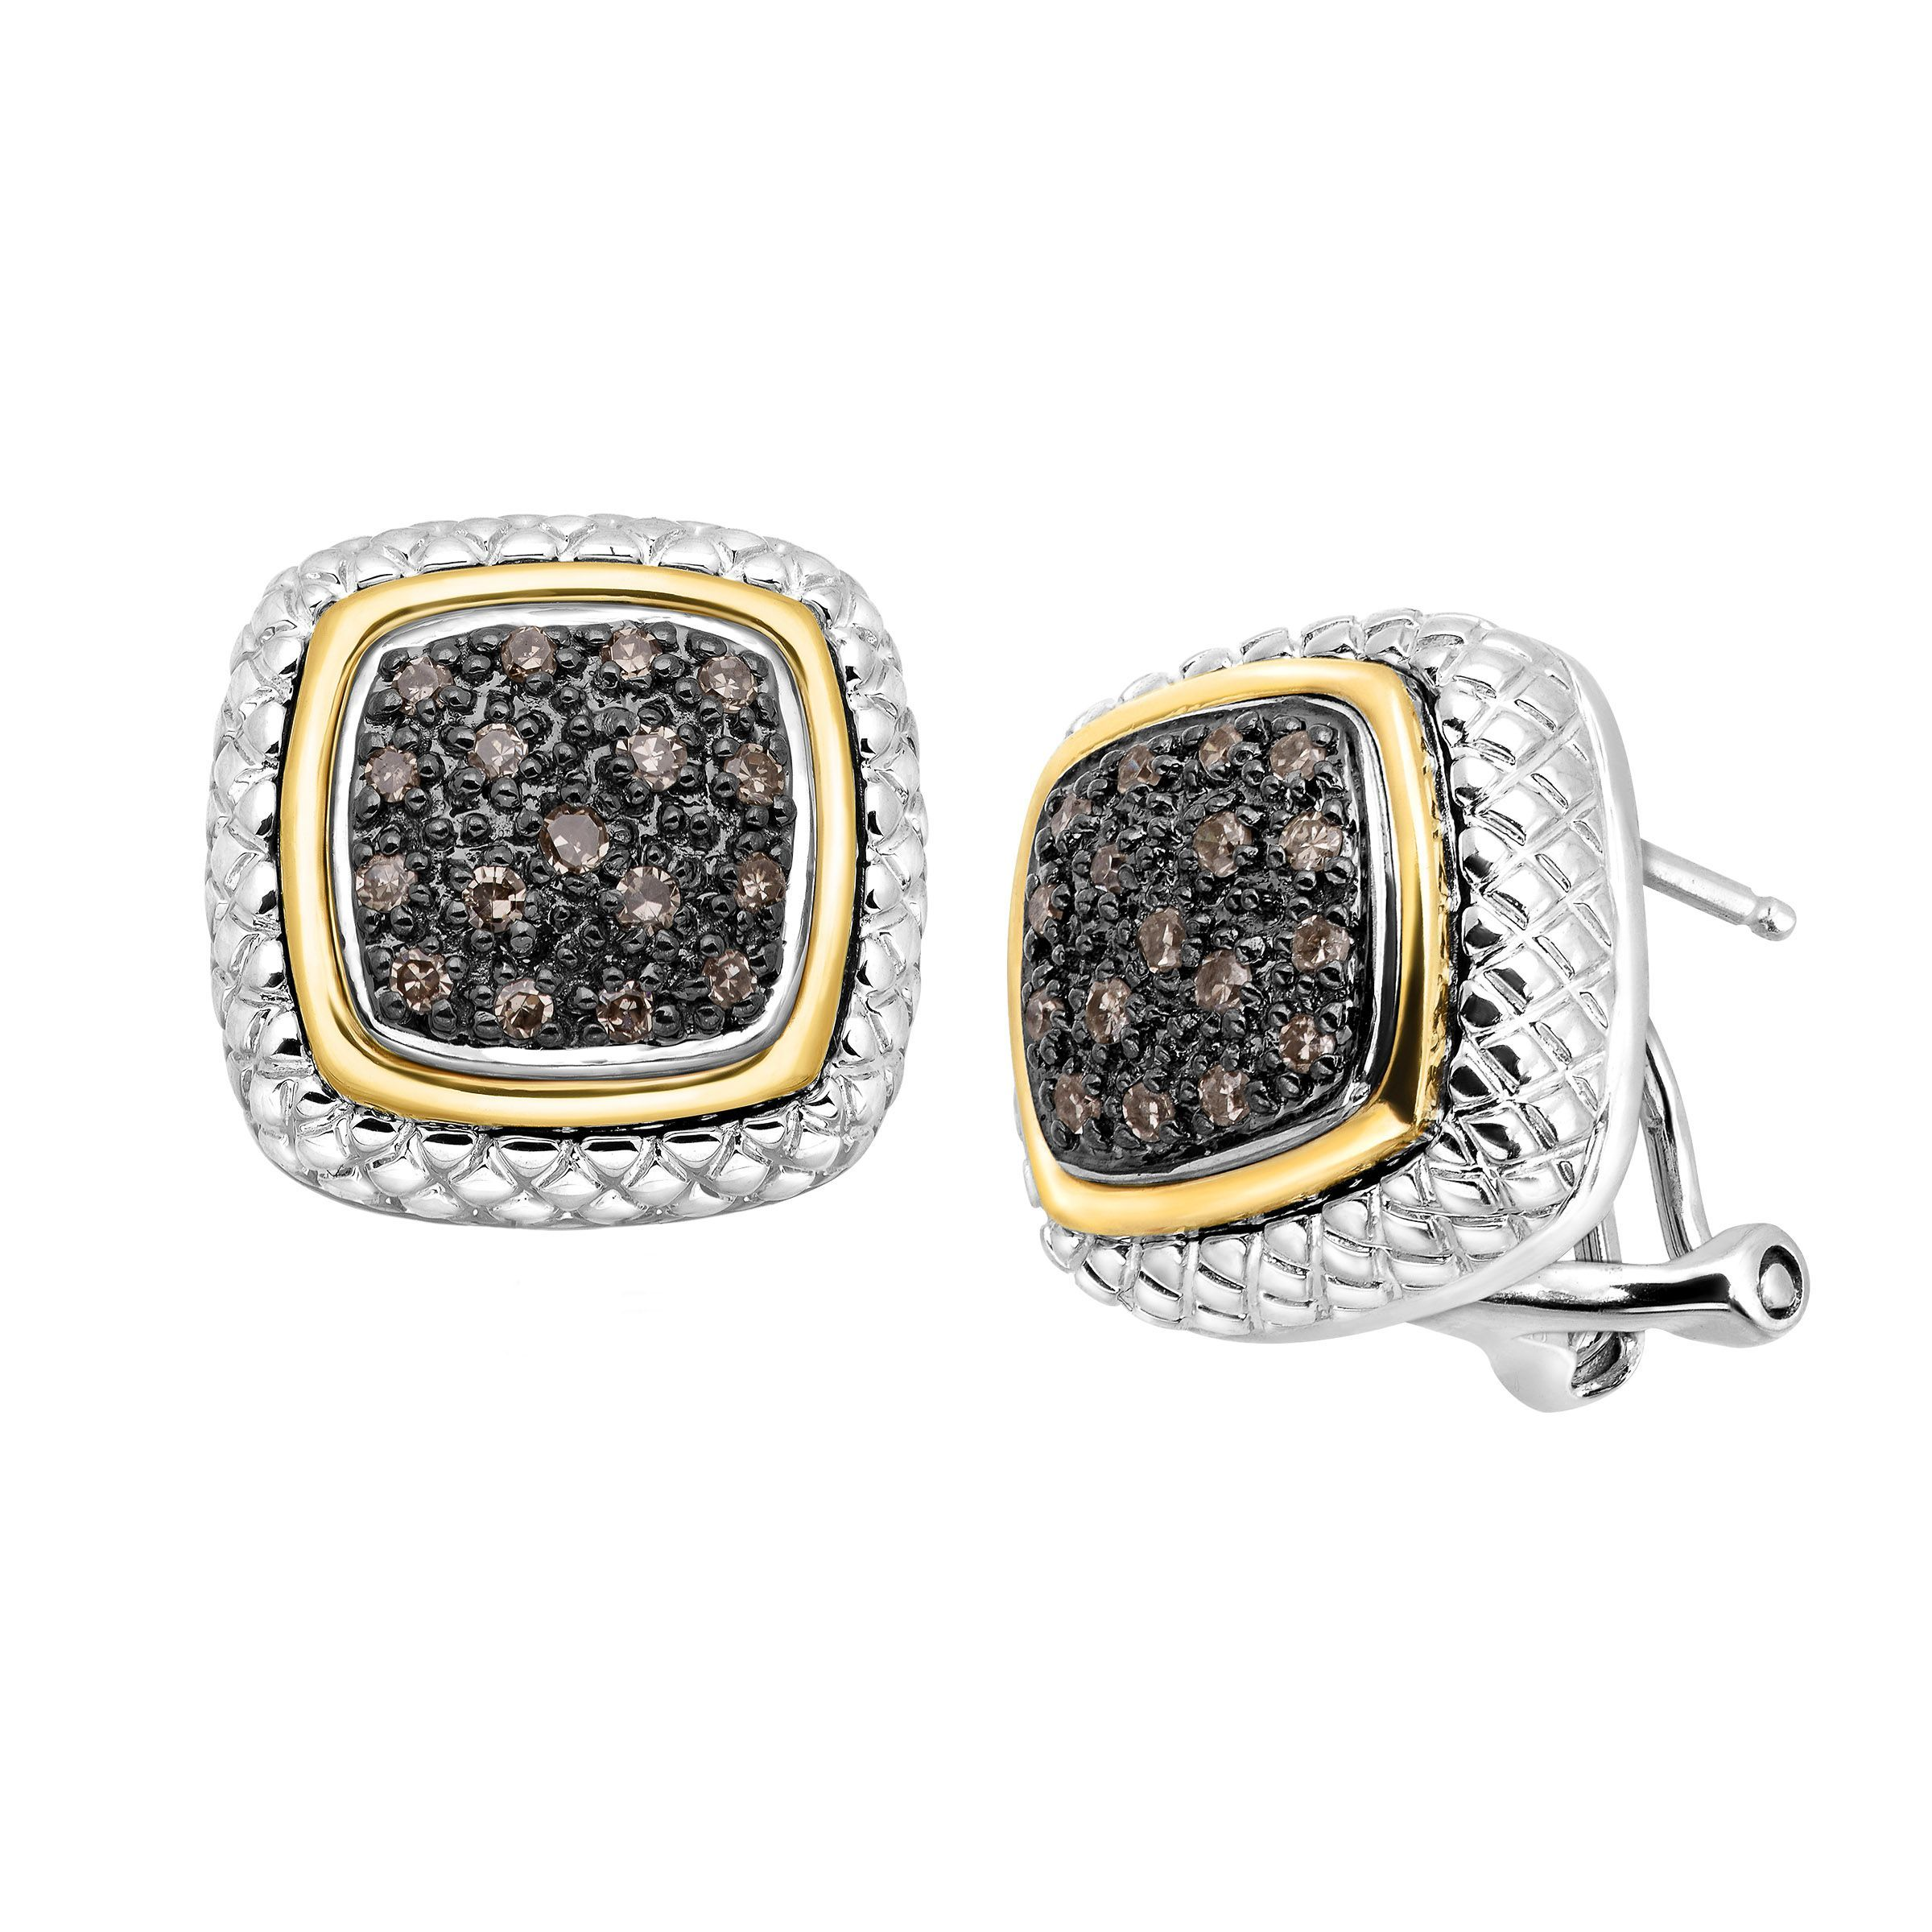 itm champagne ct paveacute diamond earrings and pav eacute gold frame silver sterling in